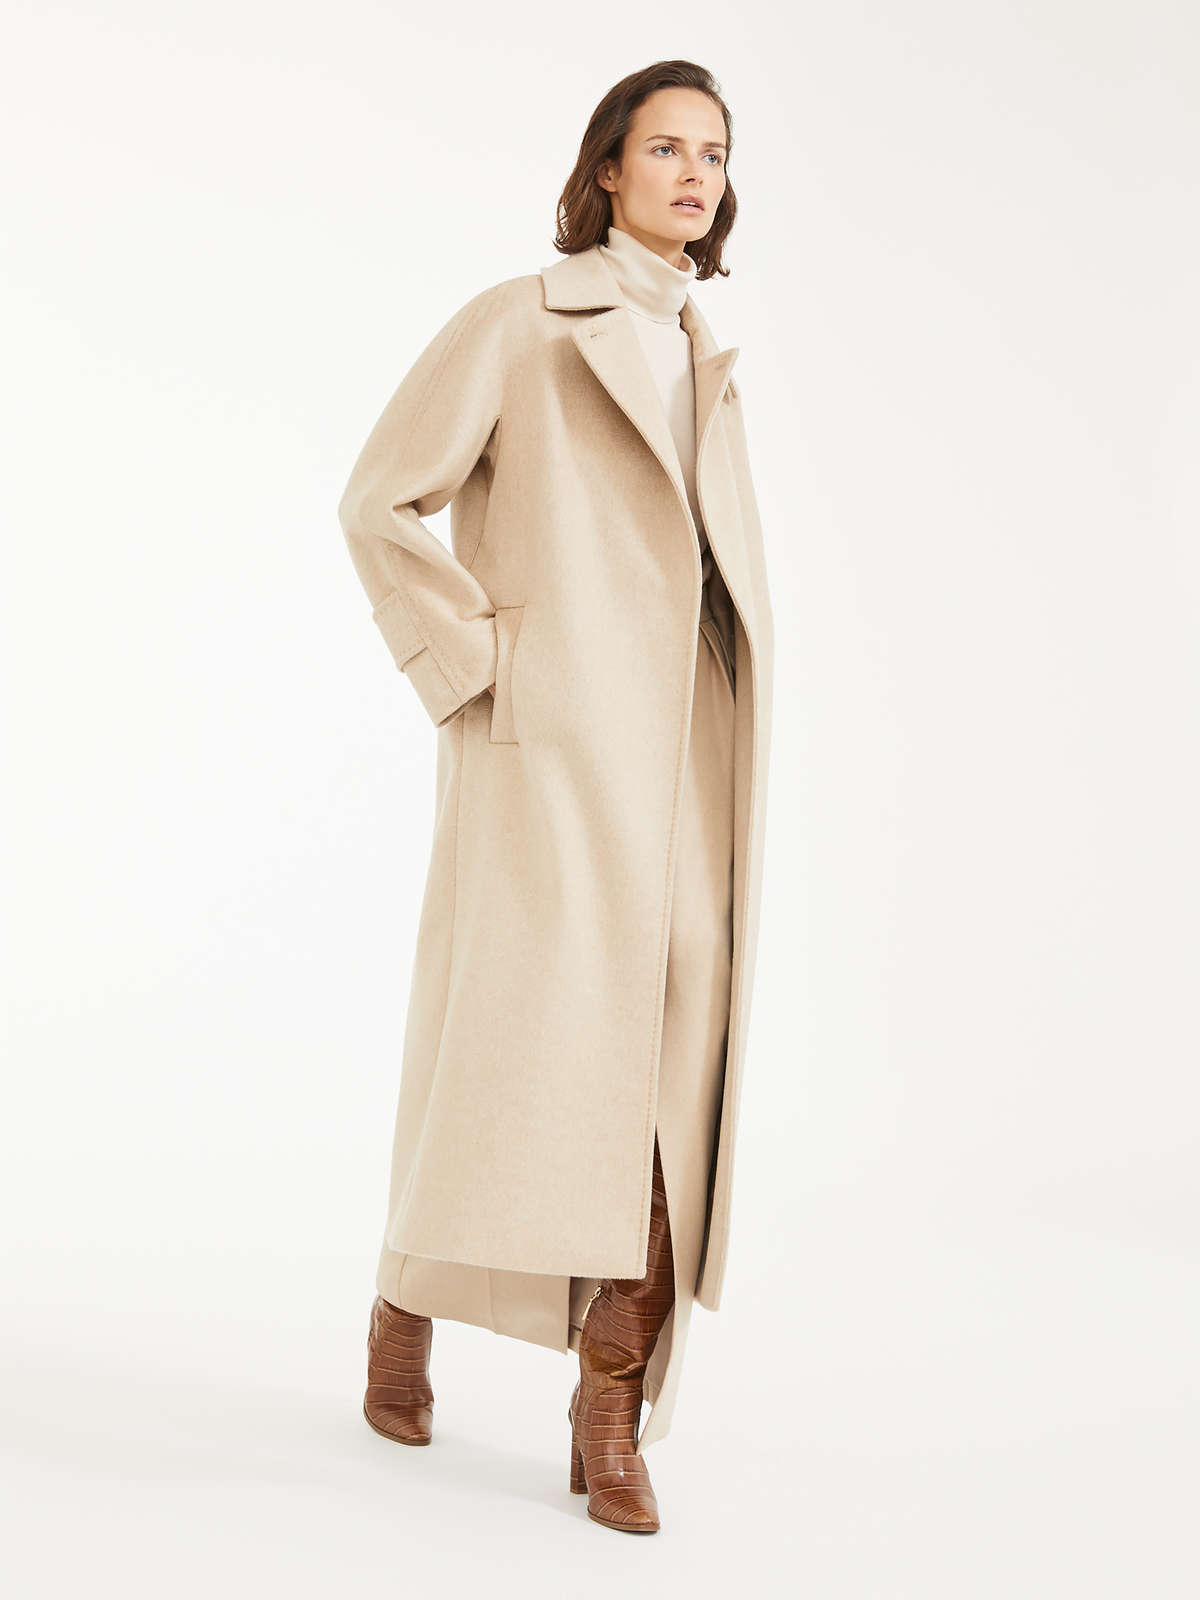 Camel and cashmere coat by Max Mara, available on maxmara.com for $4403 Priyanka Chopra Outerwear Exact Product